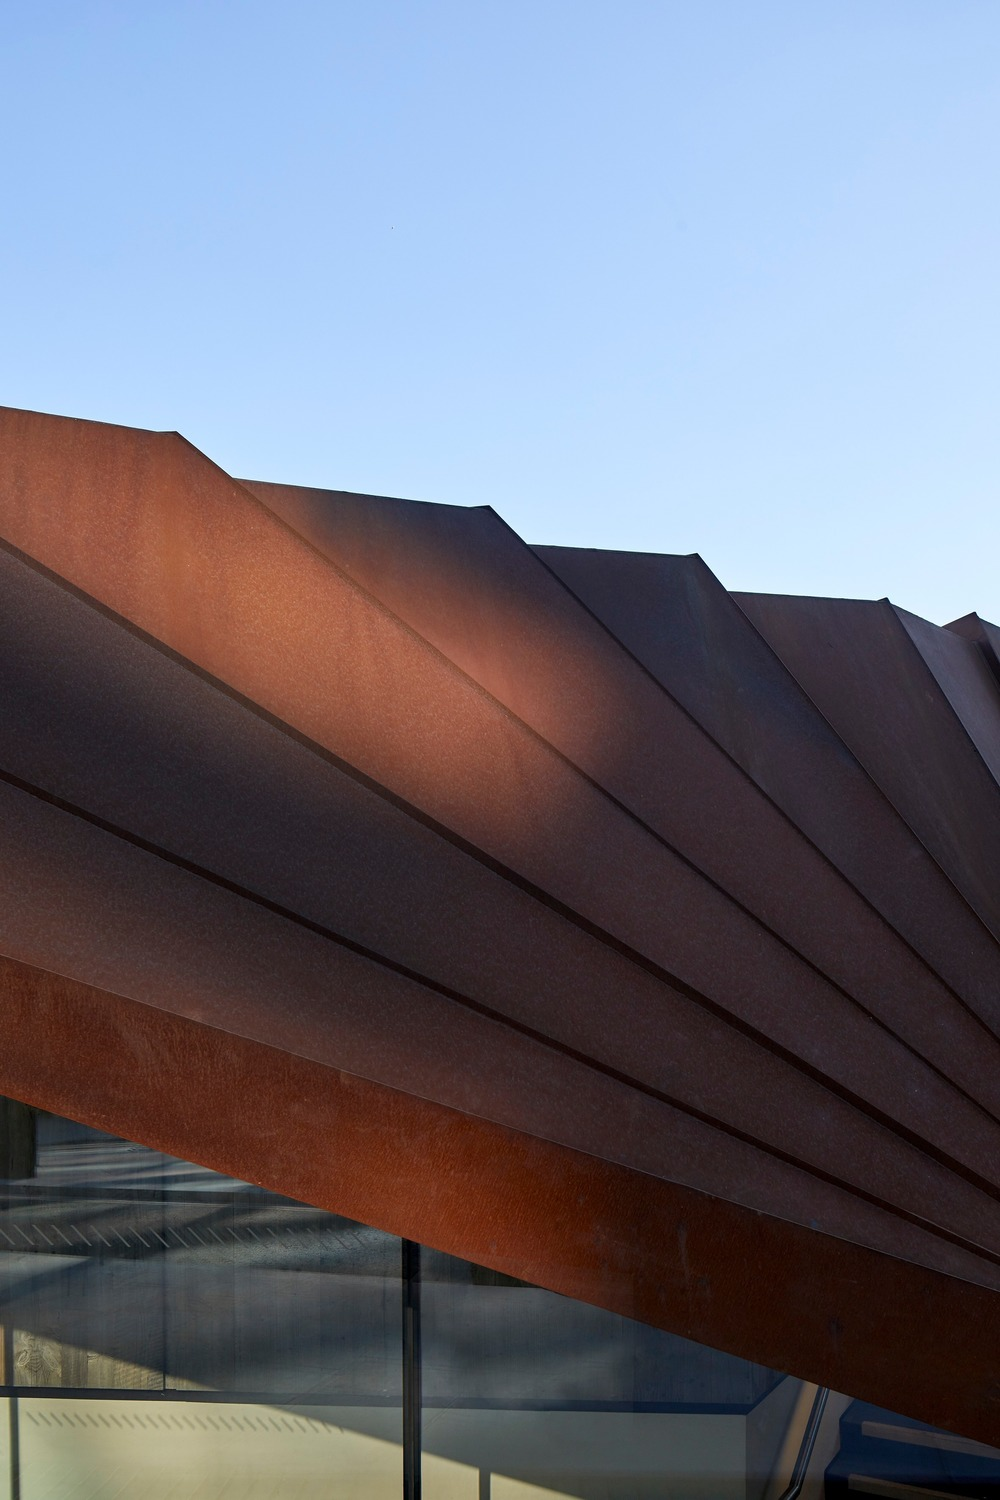 Details of the angles on the pavilion roof